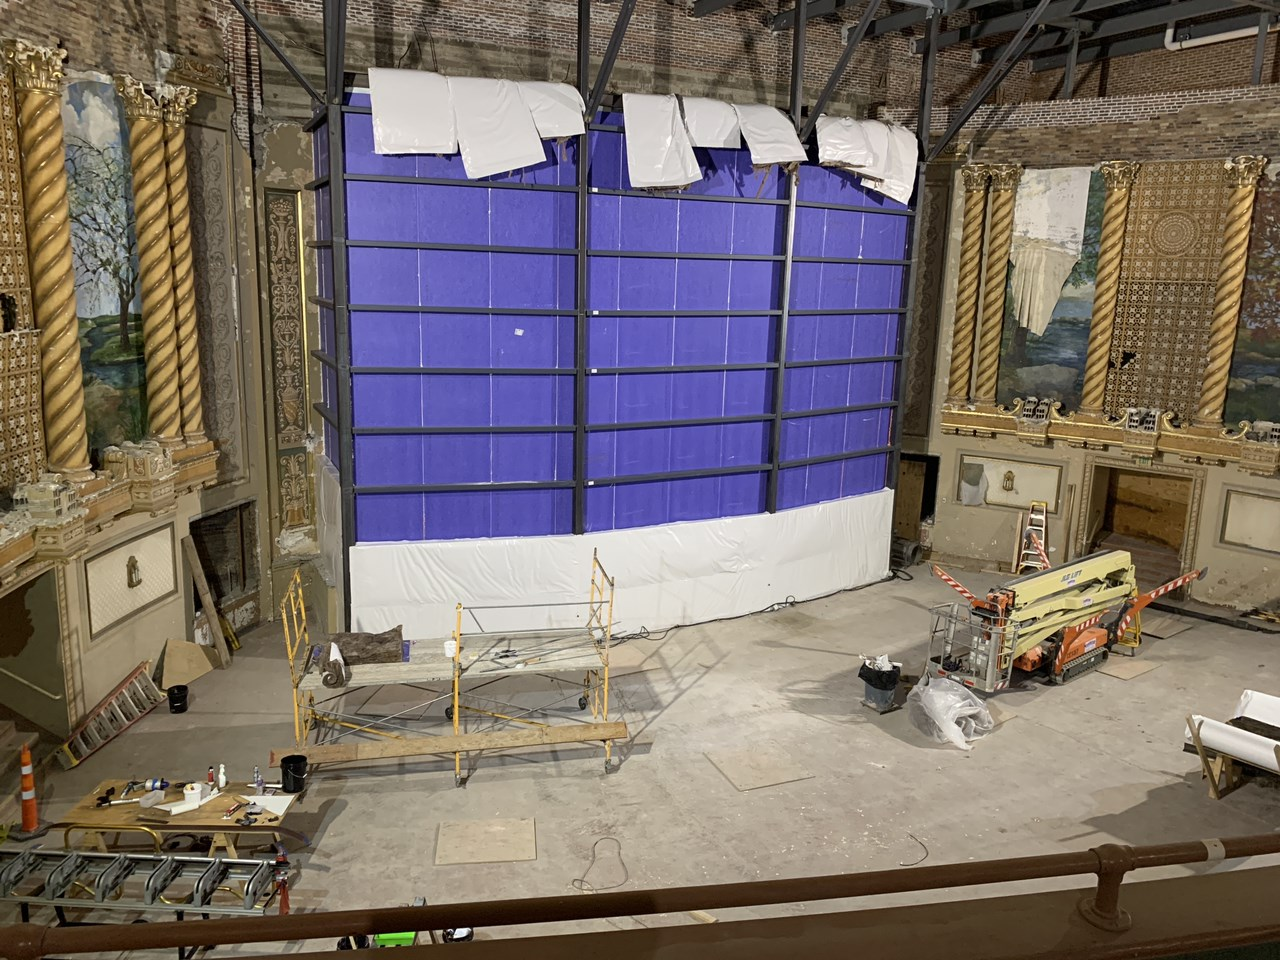 Theater stage area under construction